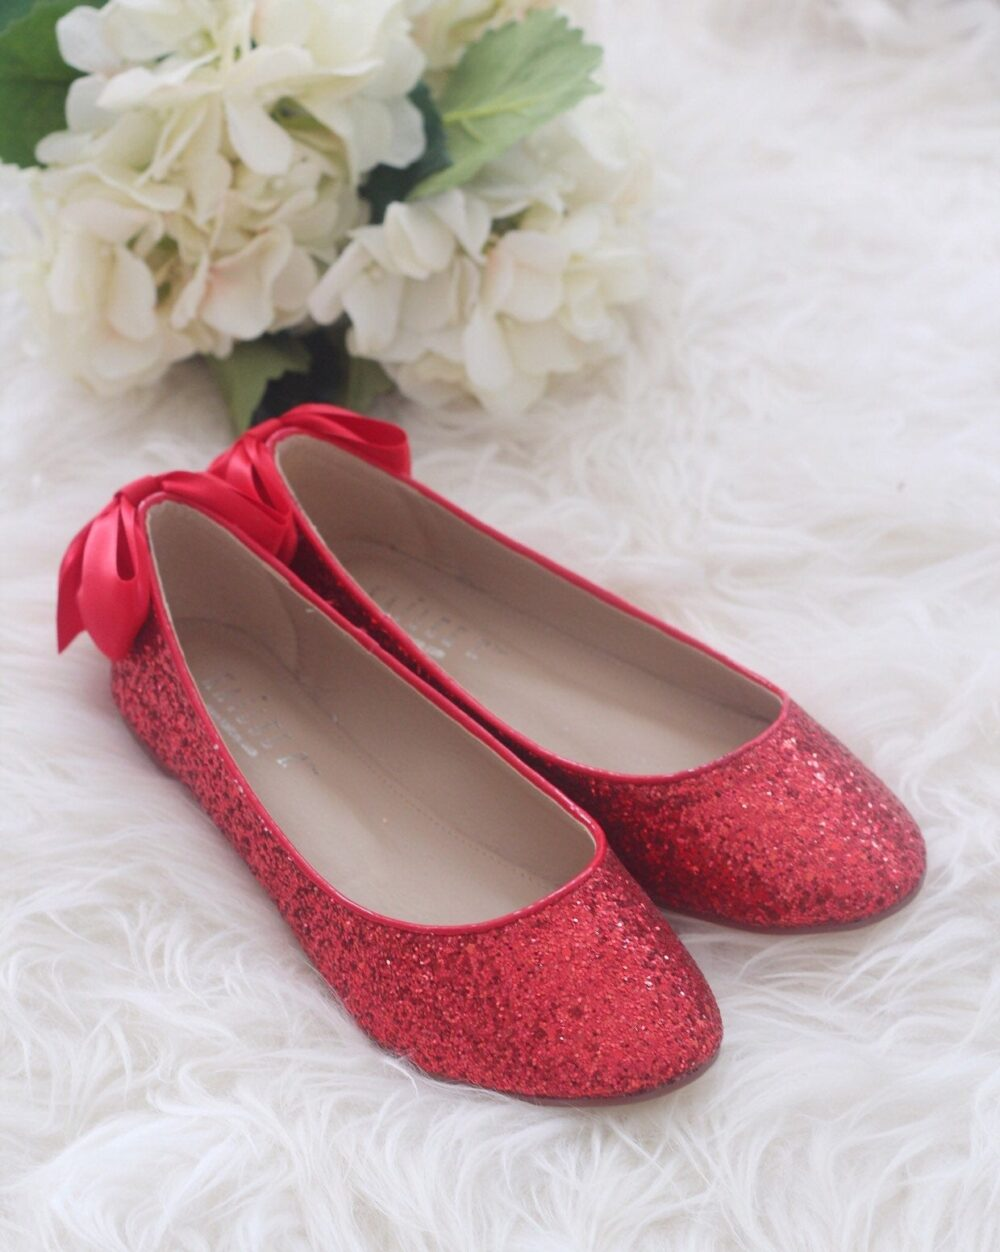 Red Rock Glitter Flats With Back Satin Bow - Bridal Shoes, Bridesmaids Women Wedding Flats, Holiday Shoes